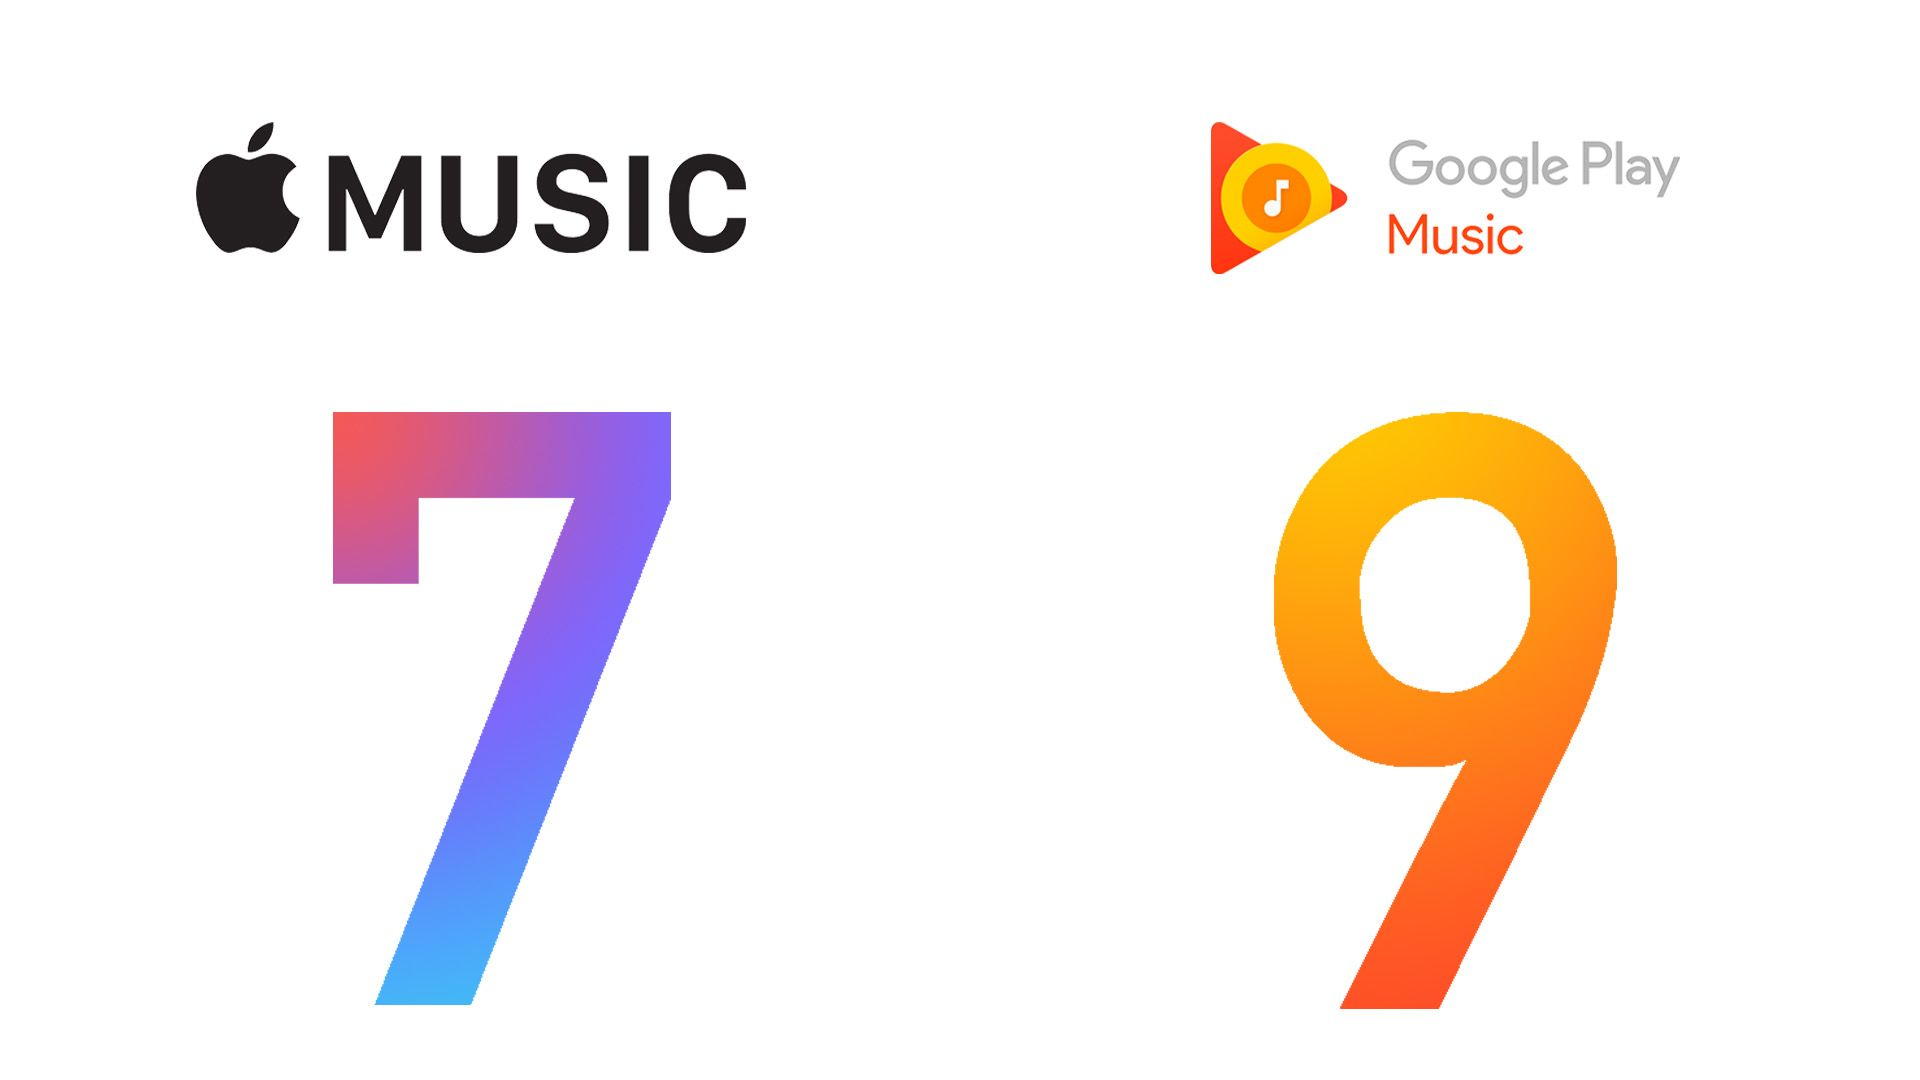 Google Play Music wins with 9 gained points versus 7 points given to Apple Music.